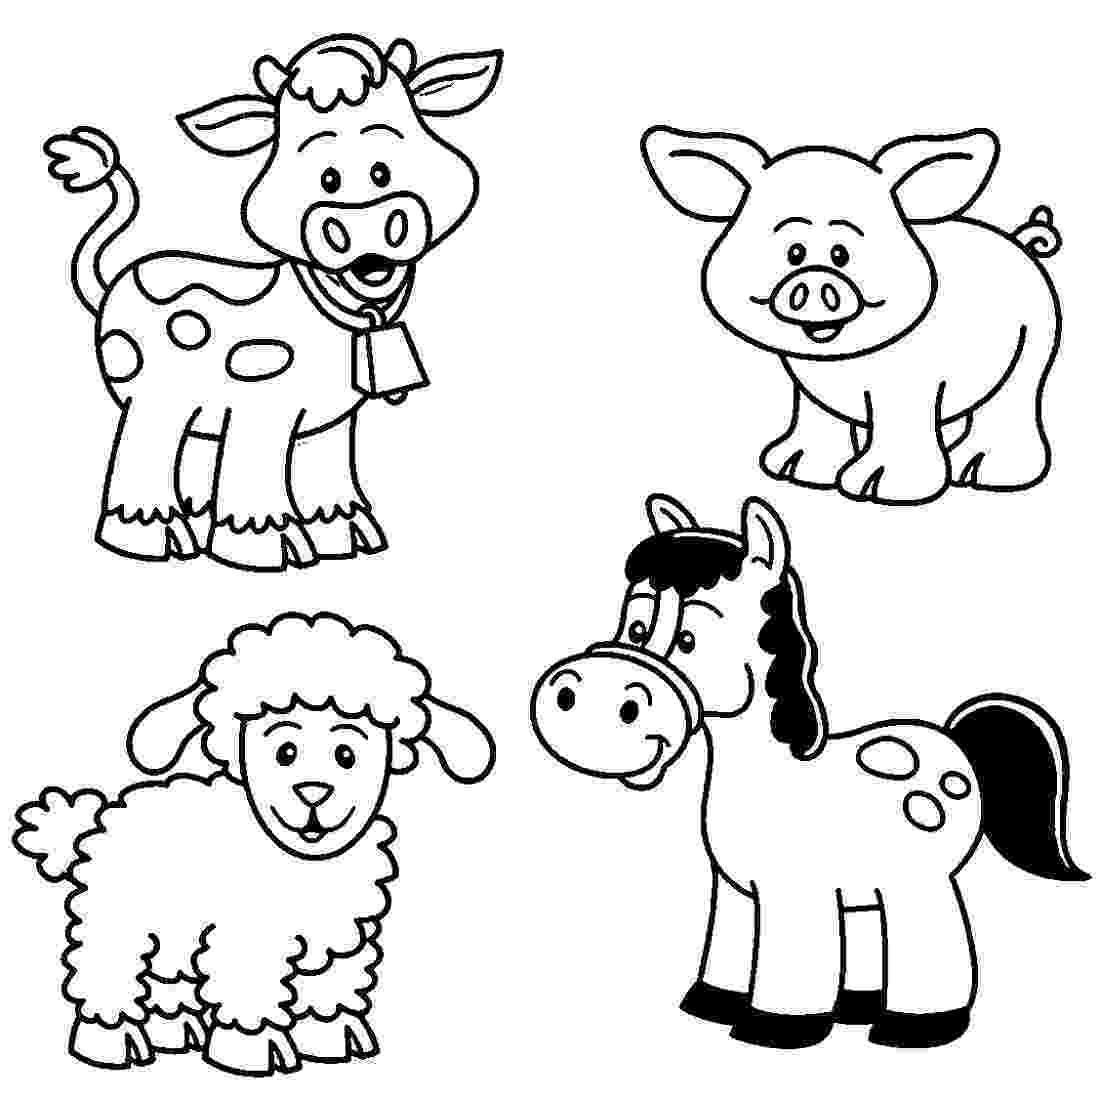 free coloring pages of baby farm animals easy farm animal dot to printable sketch coloring page farm pages baby of coloring free animals